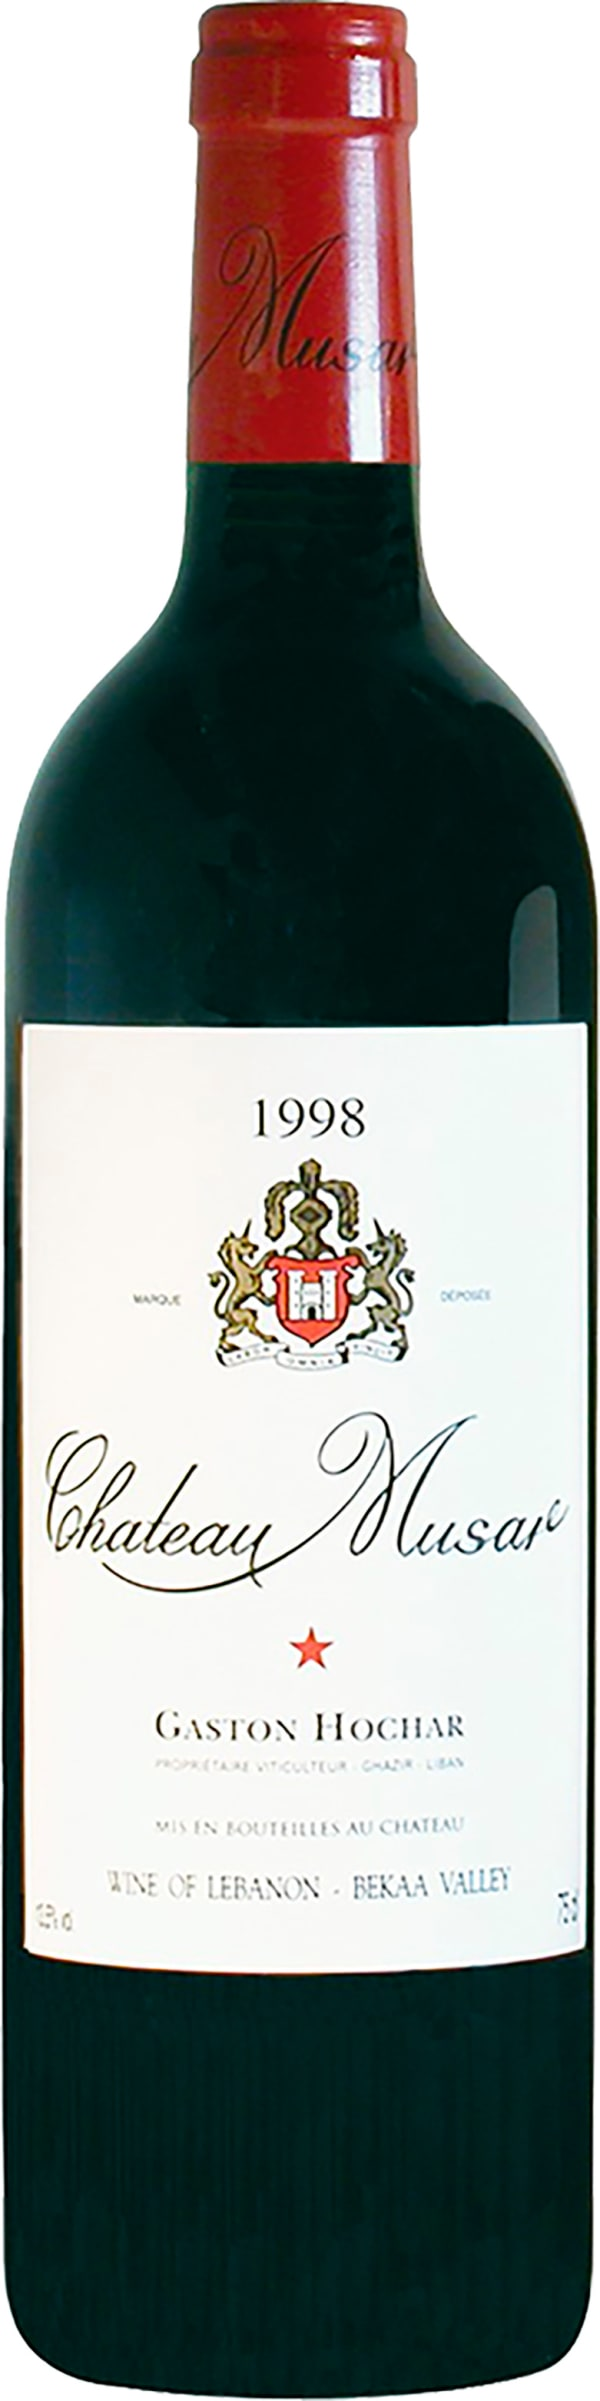 Chateau Musar 1998